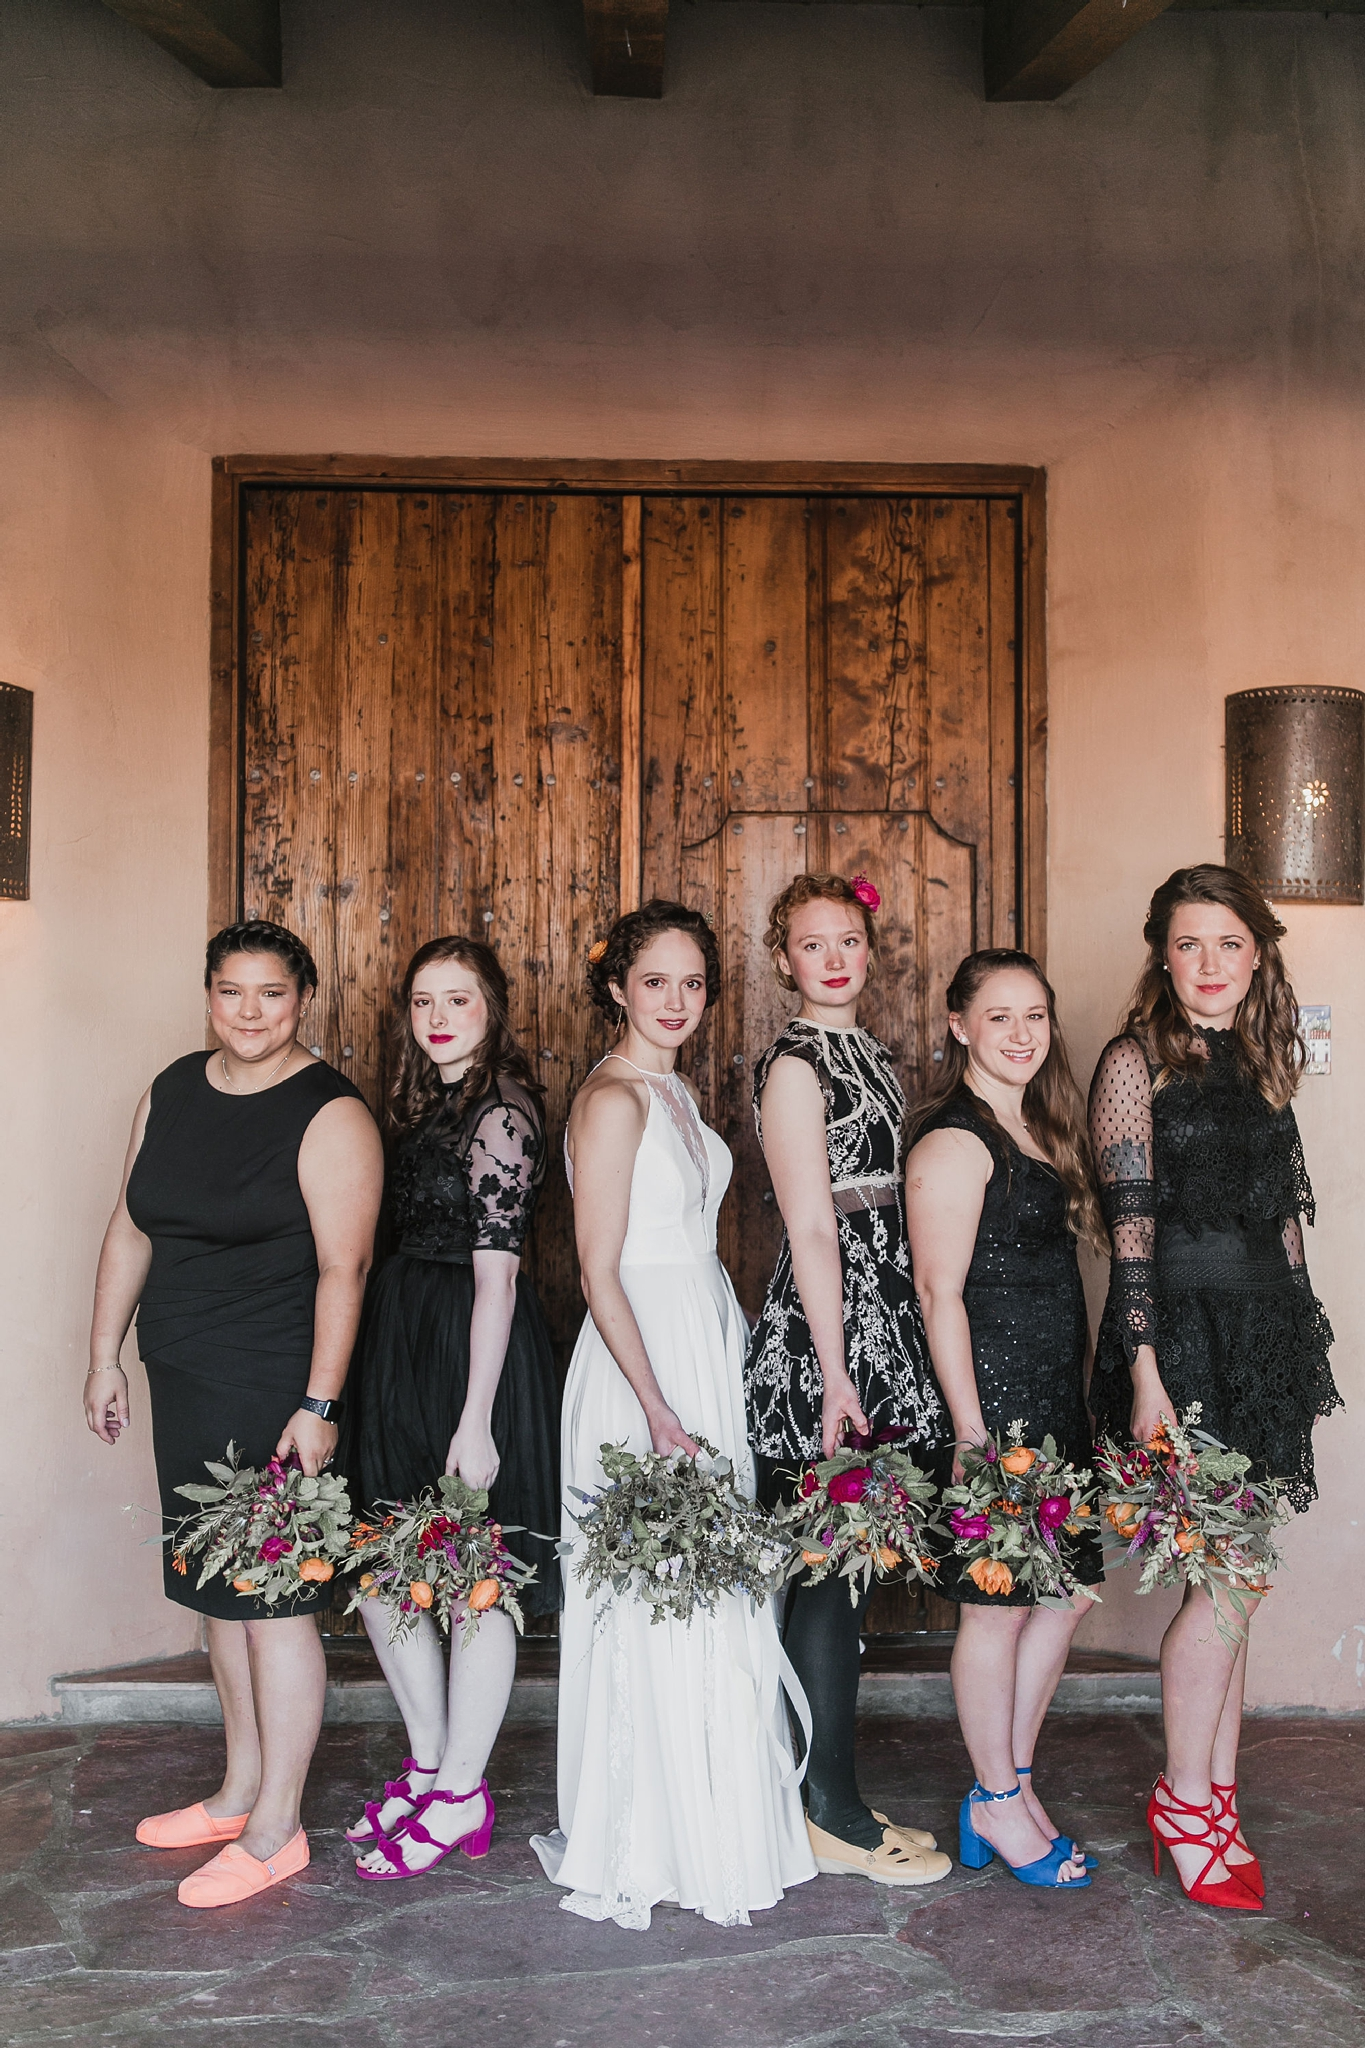 Alicia+lucia+photography+-+albuquerque+wedding+photographer+-+santa+fe+wedding+photography+-+new+mexico+wedding+photographer+-+new+mexico+wedding+-+engagement+-+santa+fe+wedding+-+hacienda+dona+andrea+-+hacienda+dona+andrea+wedding_0026.jpg